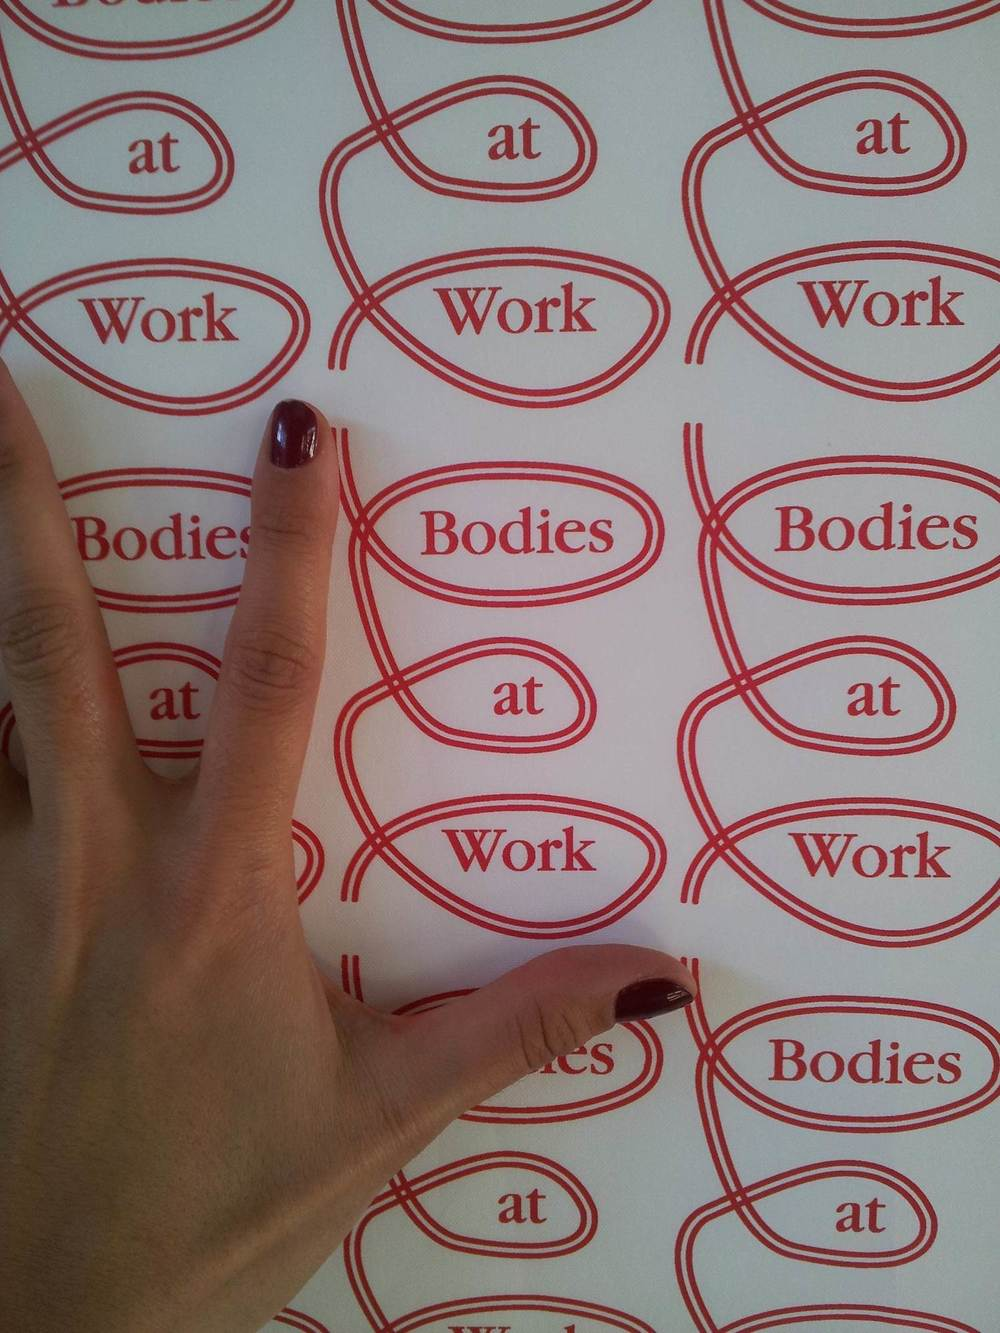 Bodies at Work, logo, Beijing 2013